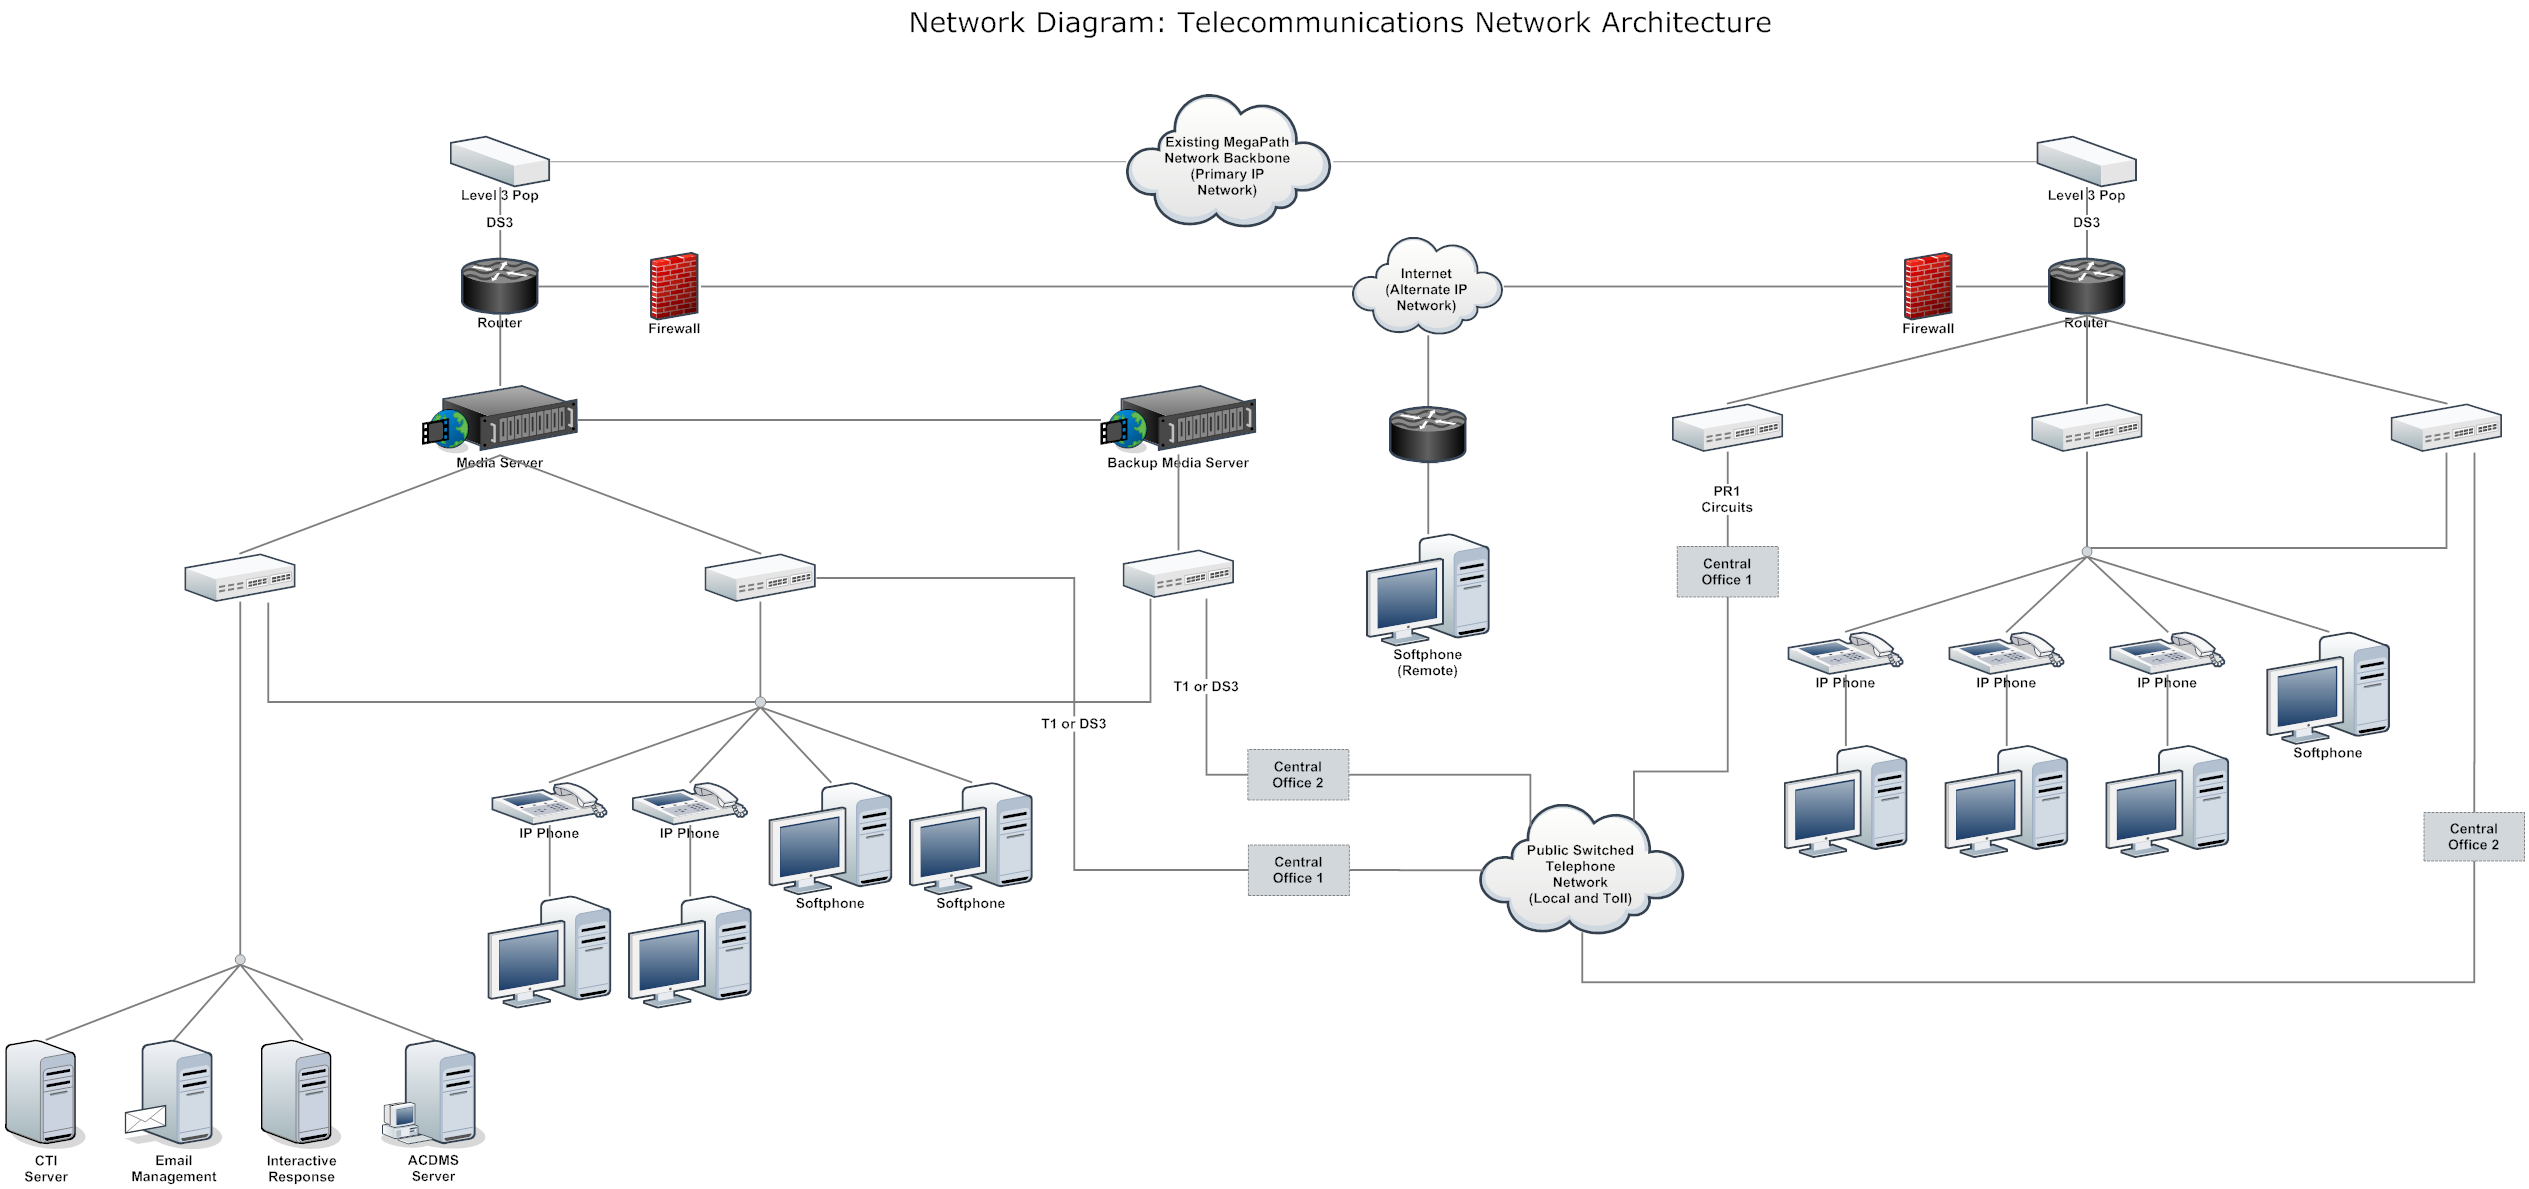 small resolution of network diagram example telecommunnications network architecture network diagram example large multiprotocol network